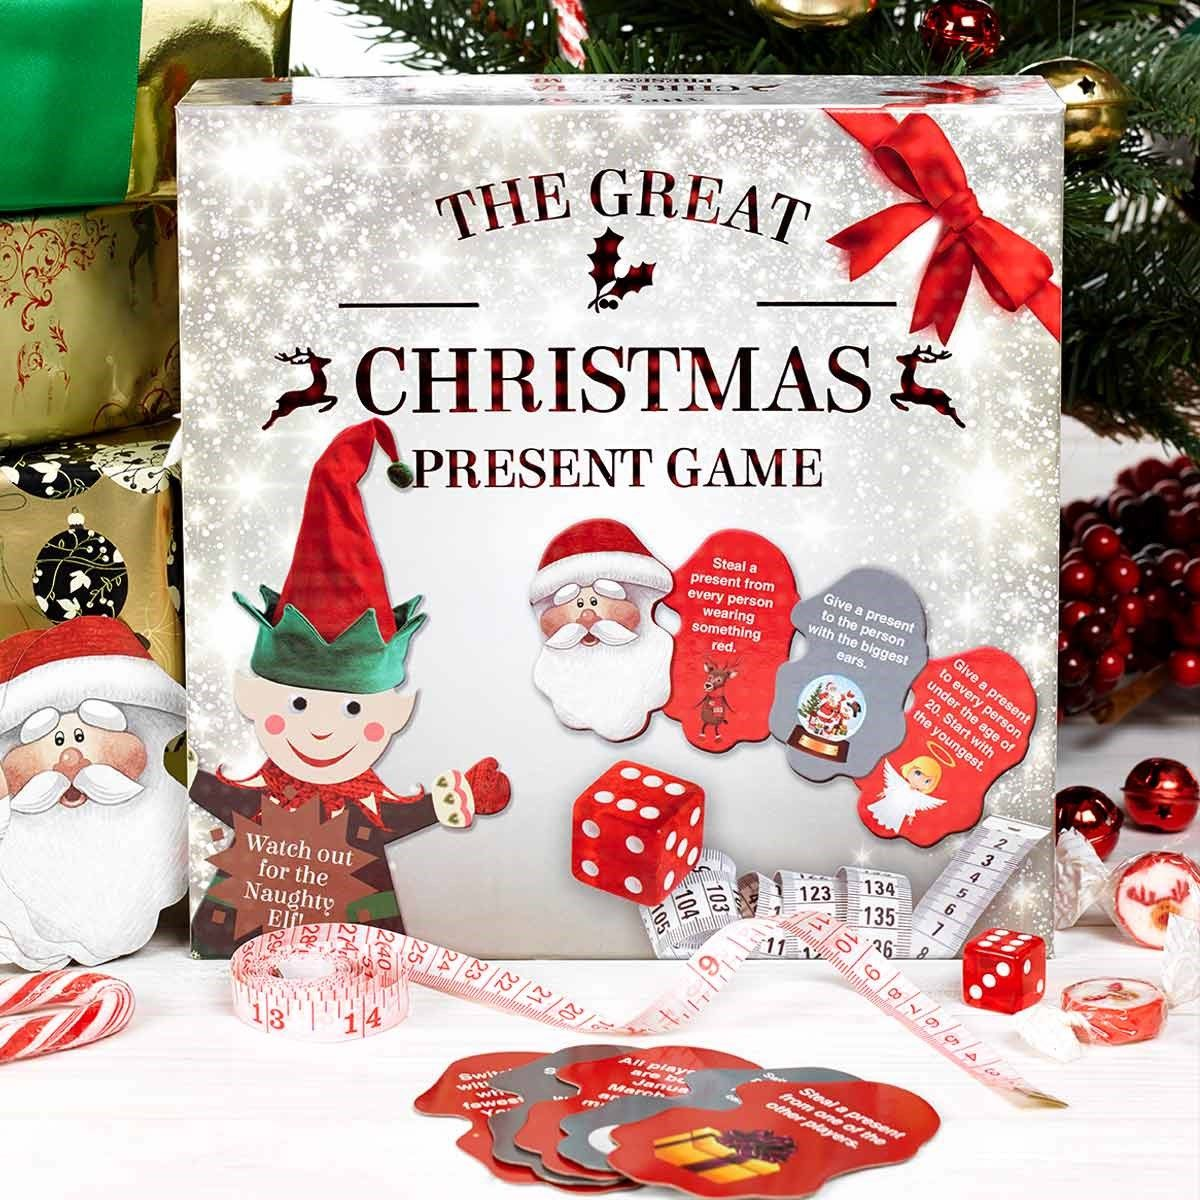 the great christmas present game - What Is A Good Christmas Present